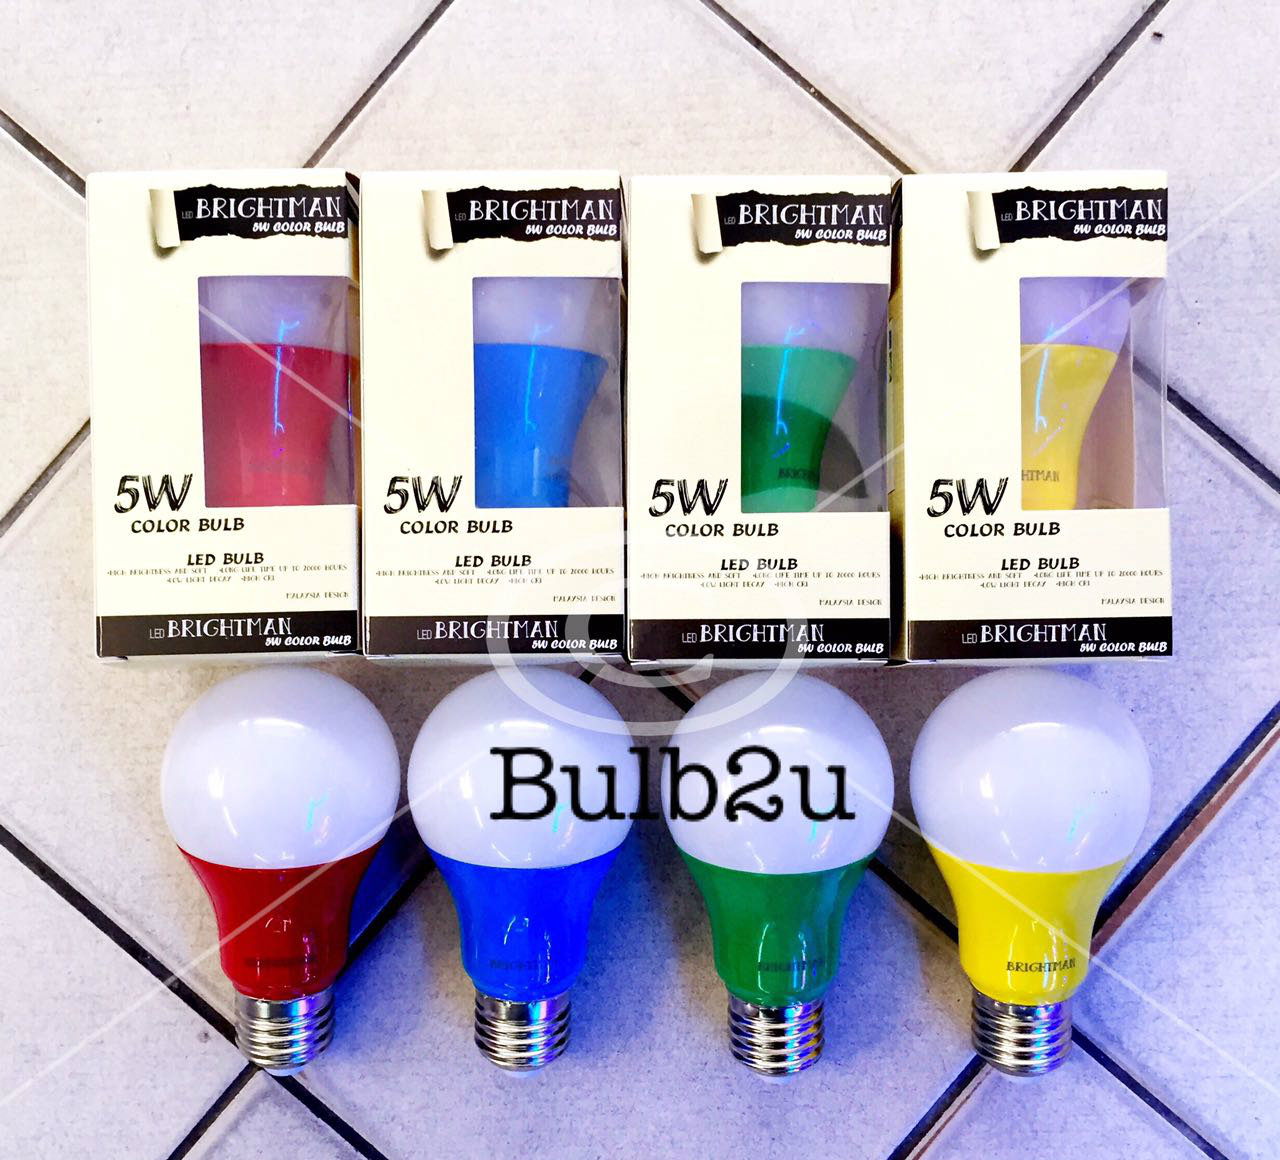 A60 LED 5W E27 COLOR BULB RED YELLOW BLUE GREEN